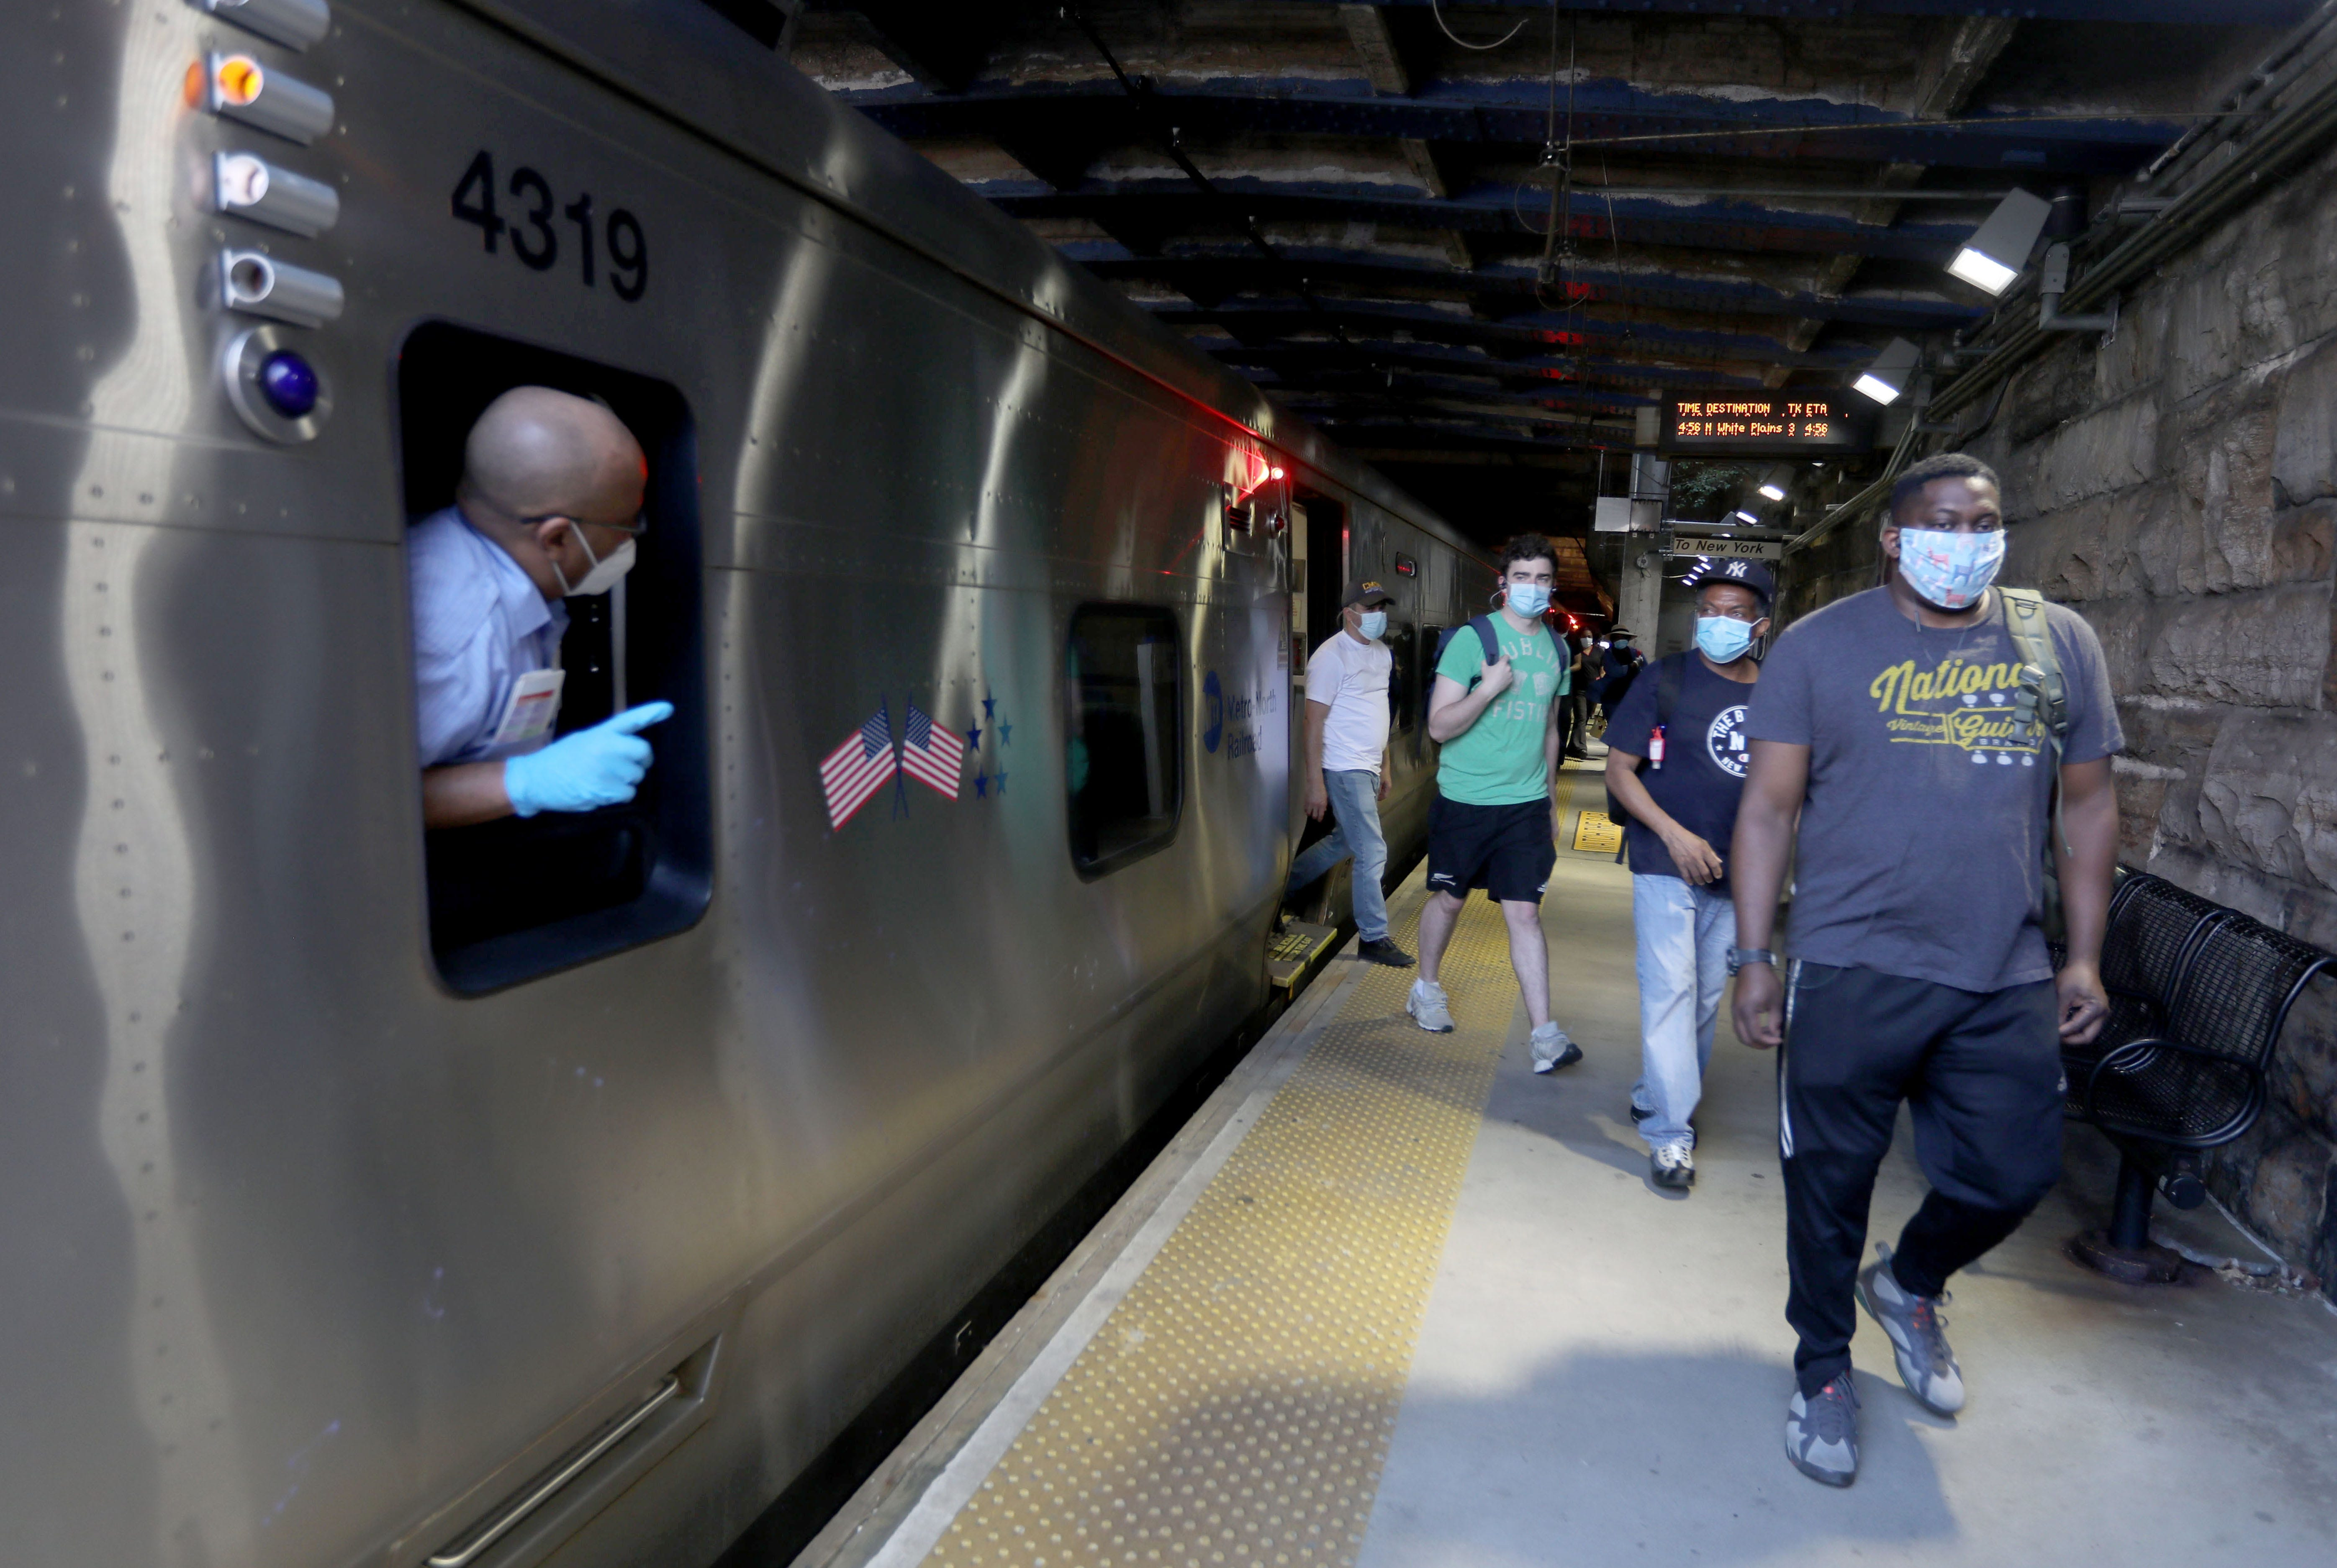 Metro-North's core riders have vanished, railroad wonders if they'll ever return